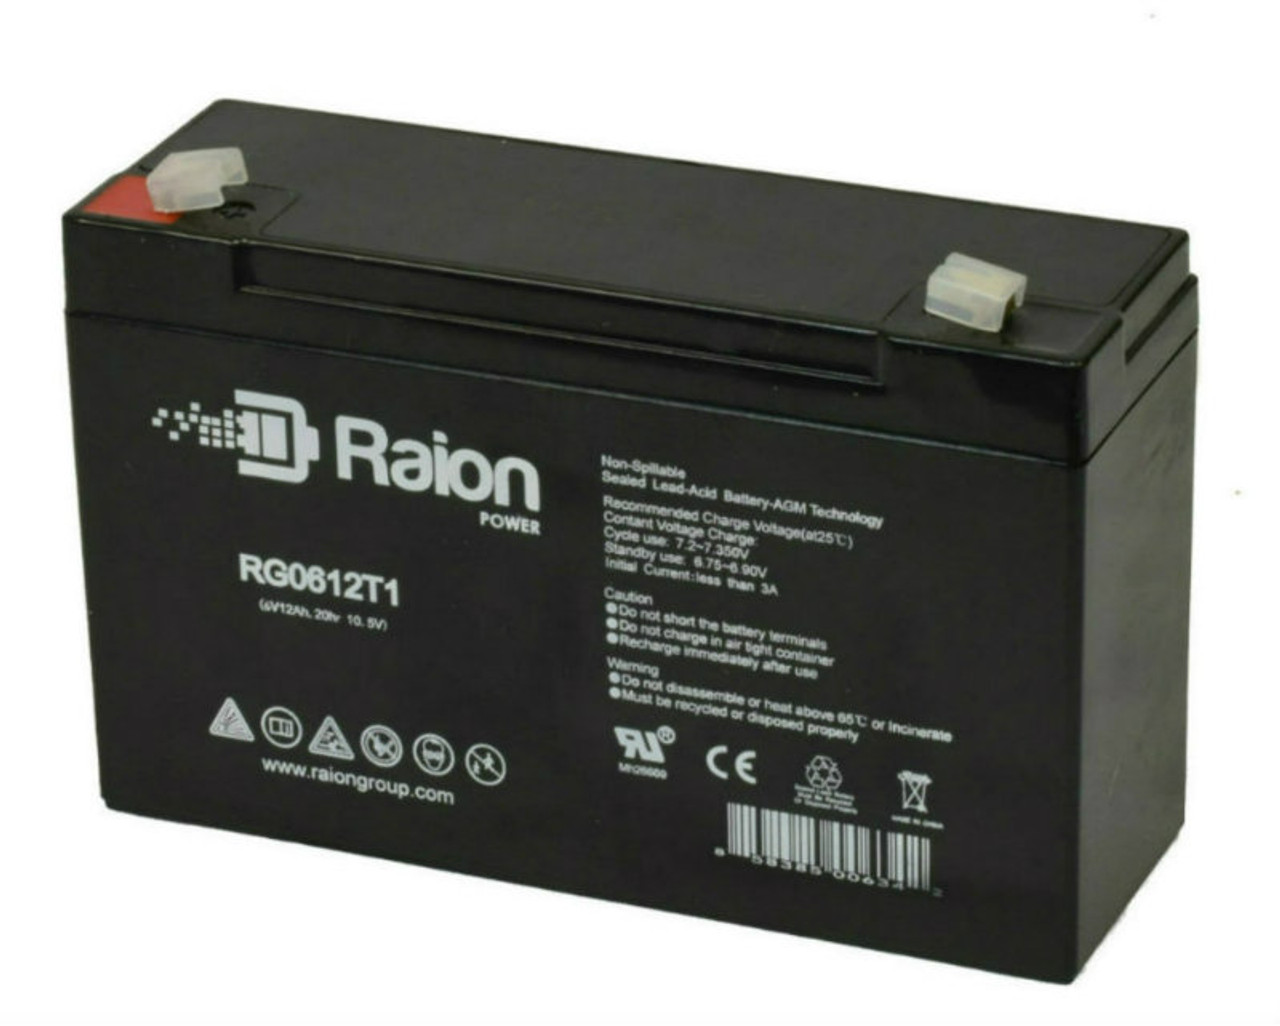 Raion Power RG06120T1 Replacement Battery Pack for Holophane M22 emergency light